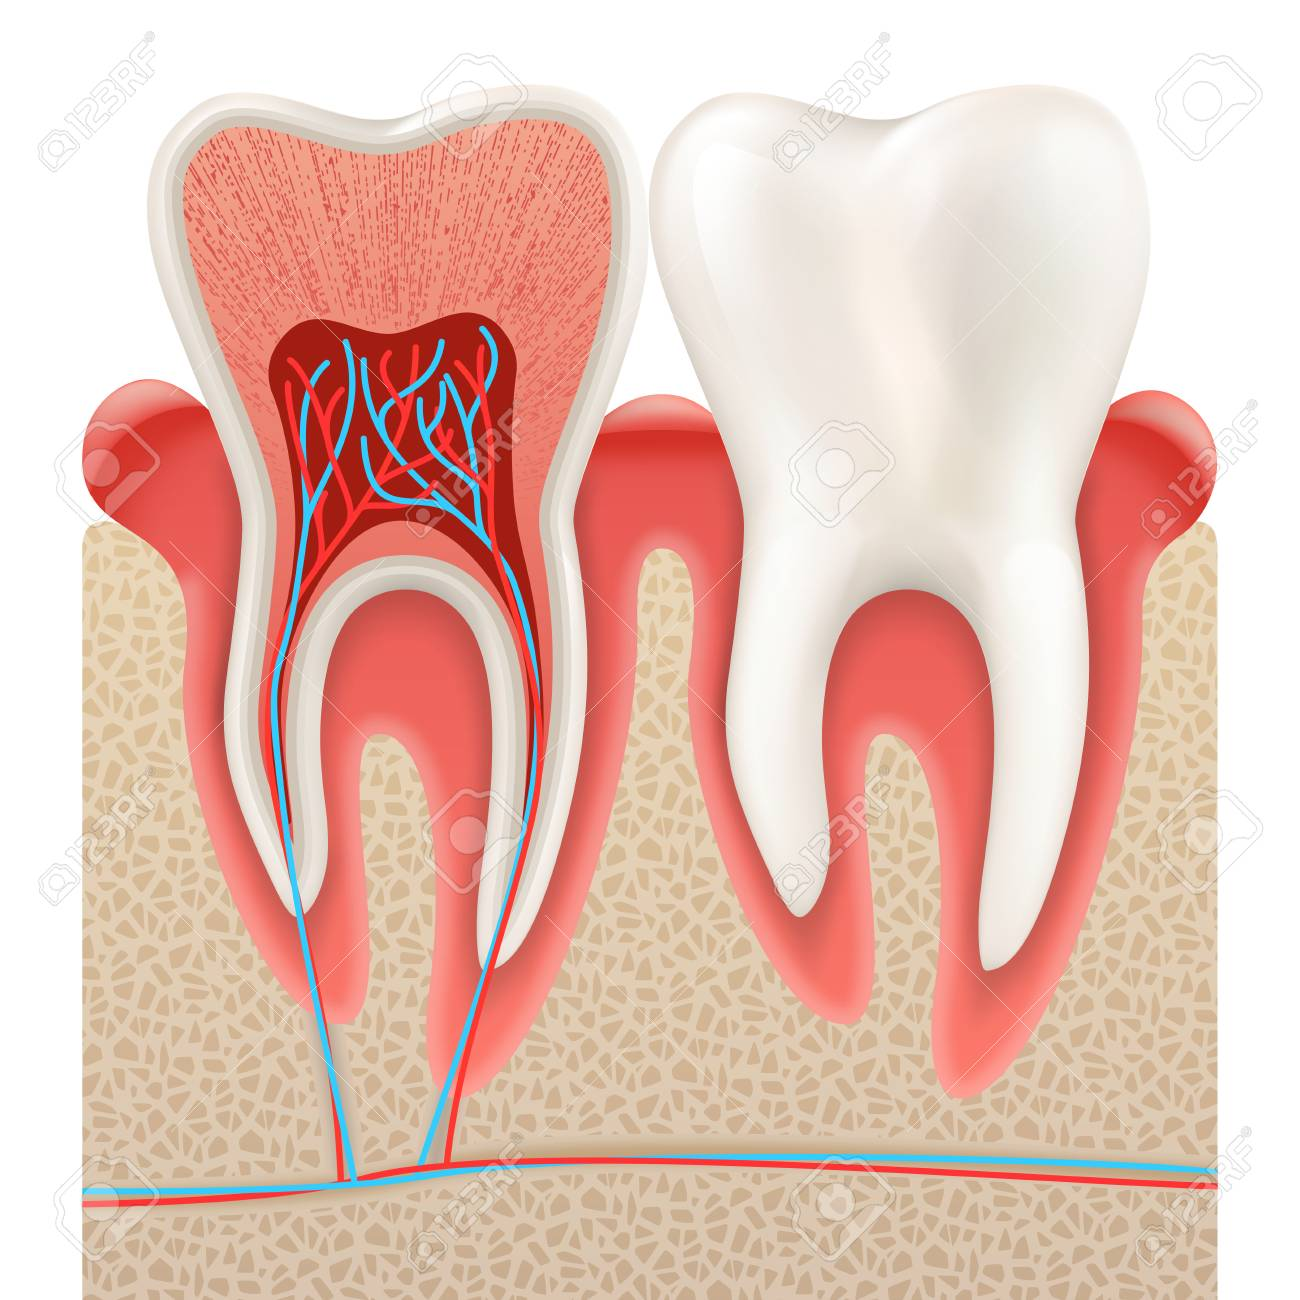 411 Dental Technician Stock Illustrations, Cliparts And Royalty Free ...